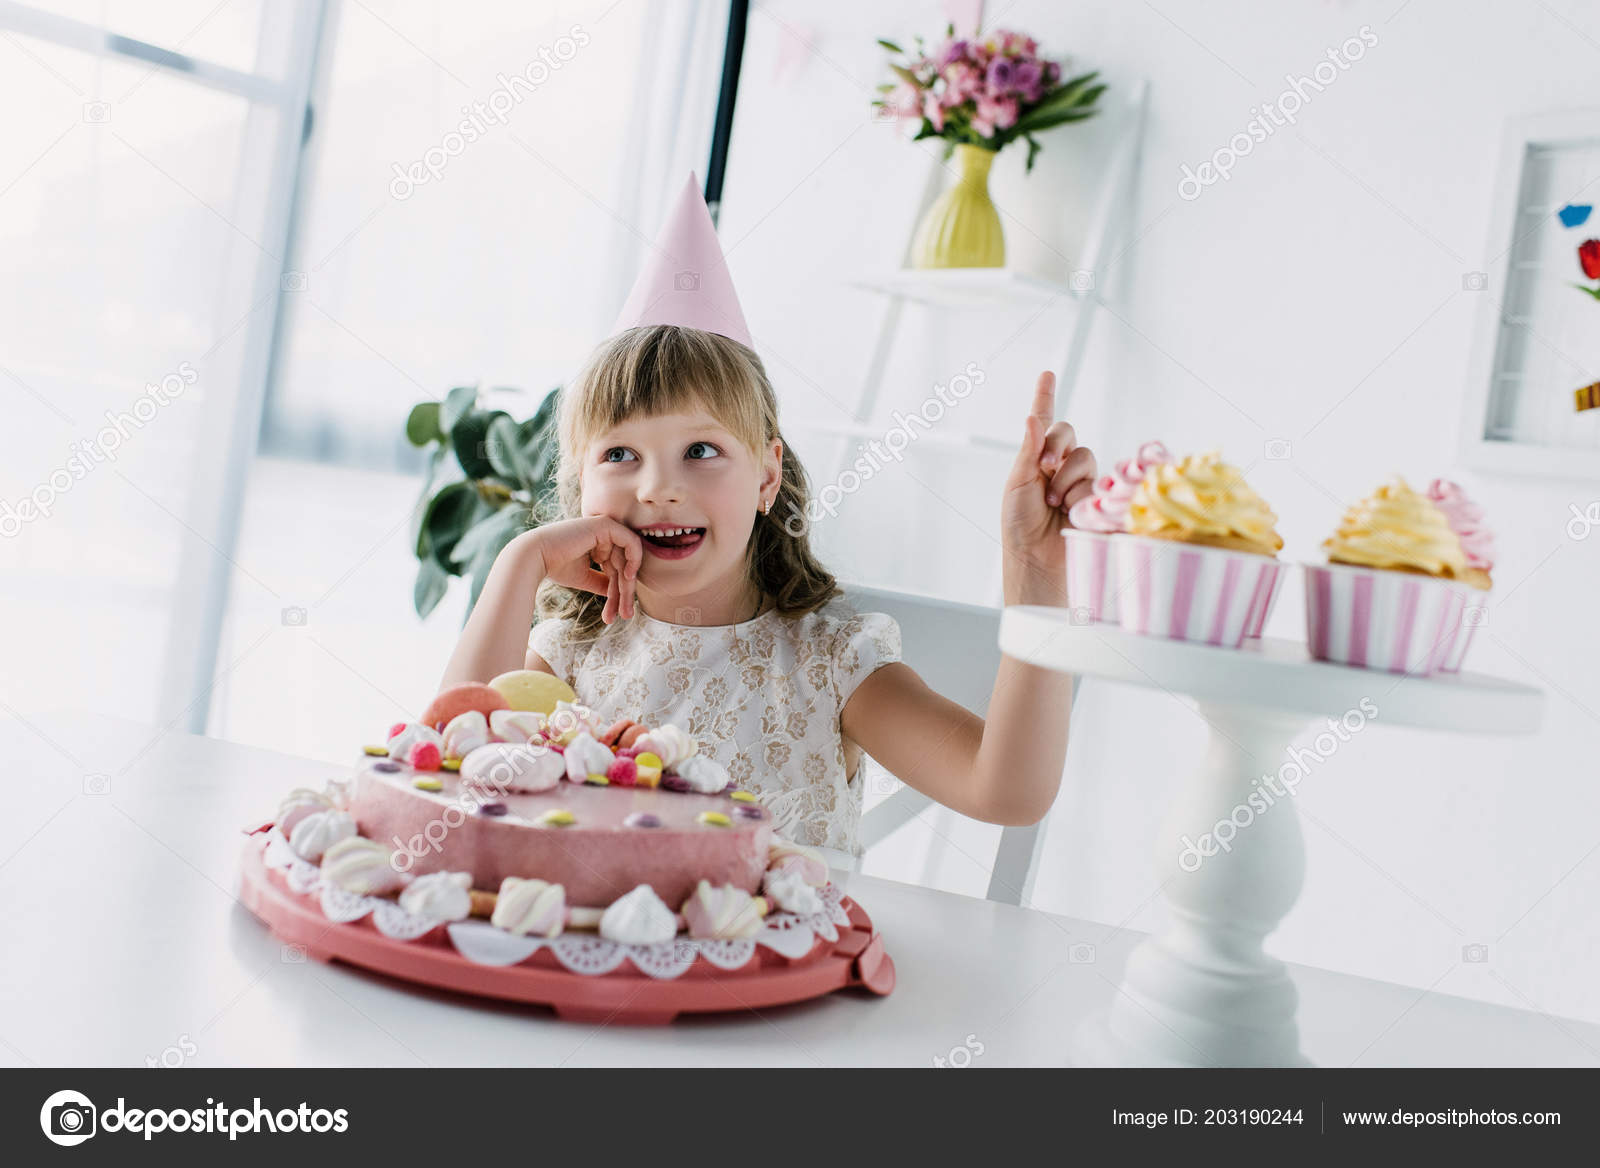 Smiling Birthday Kid Cone Doing Idea Gesture While Sitting Table Stockfoto